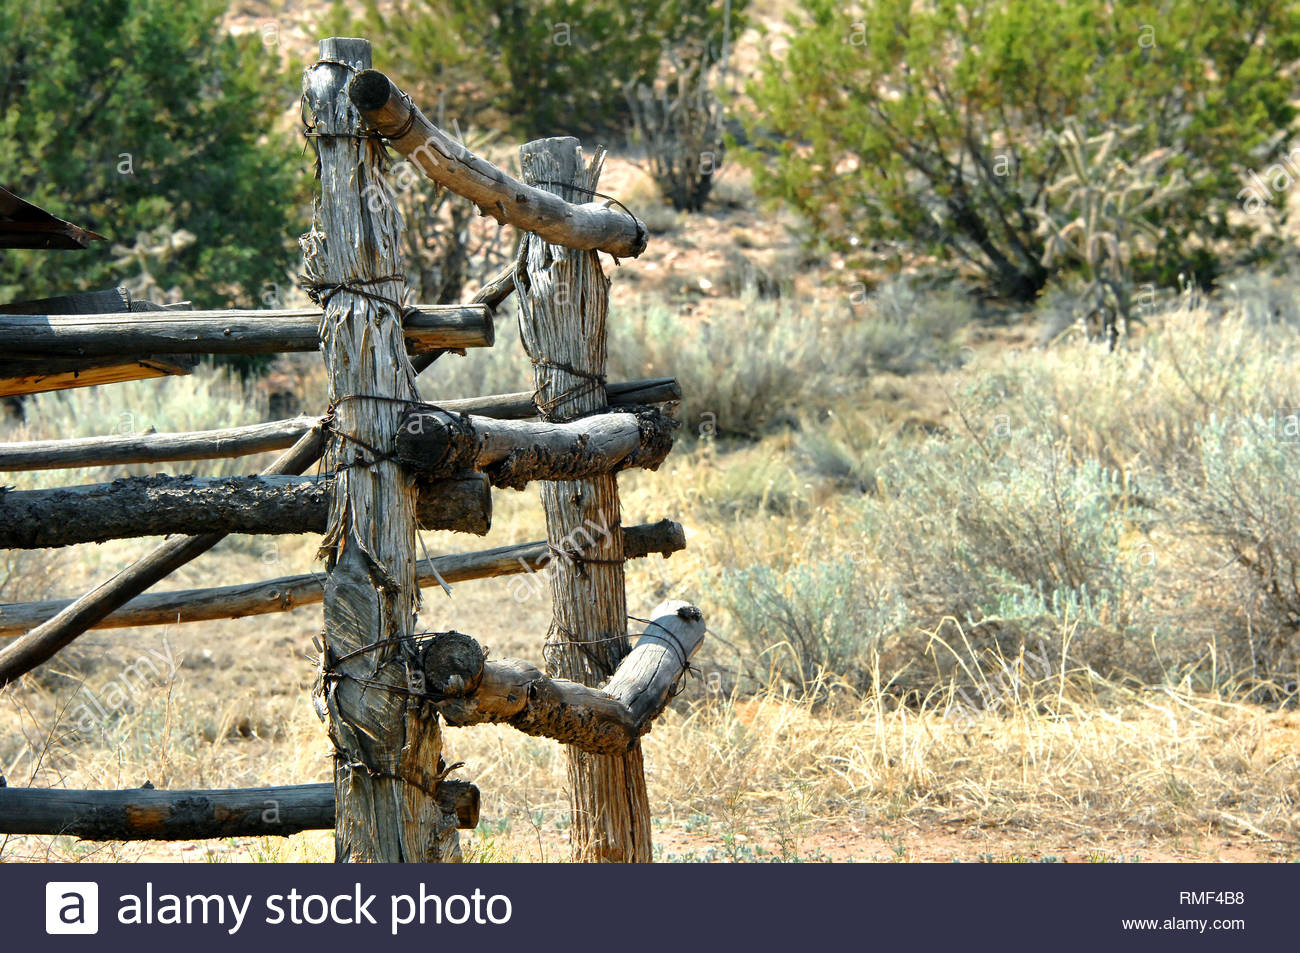 Background images shows old corral with bark edged wooden posts 1300x953